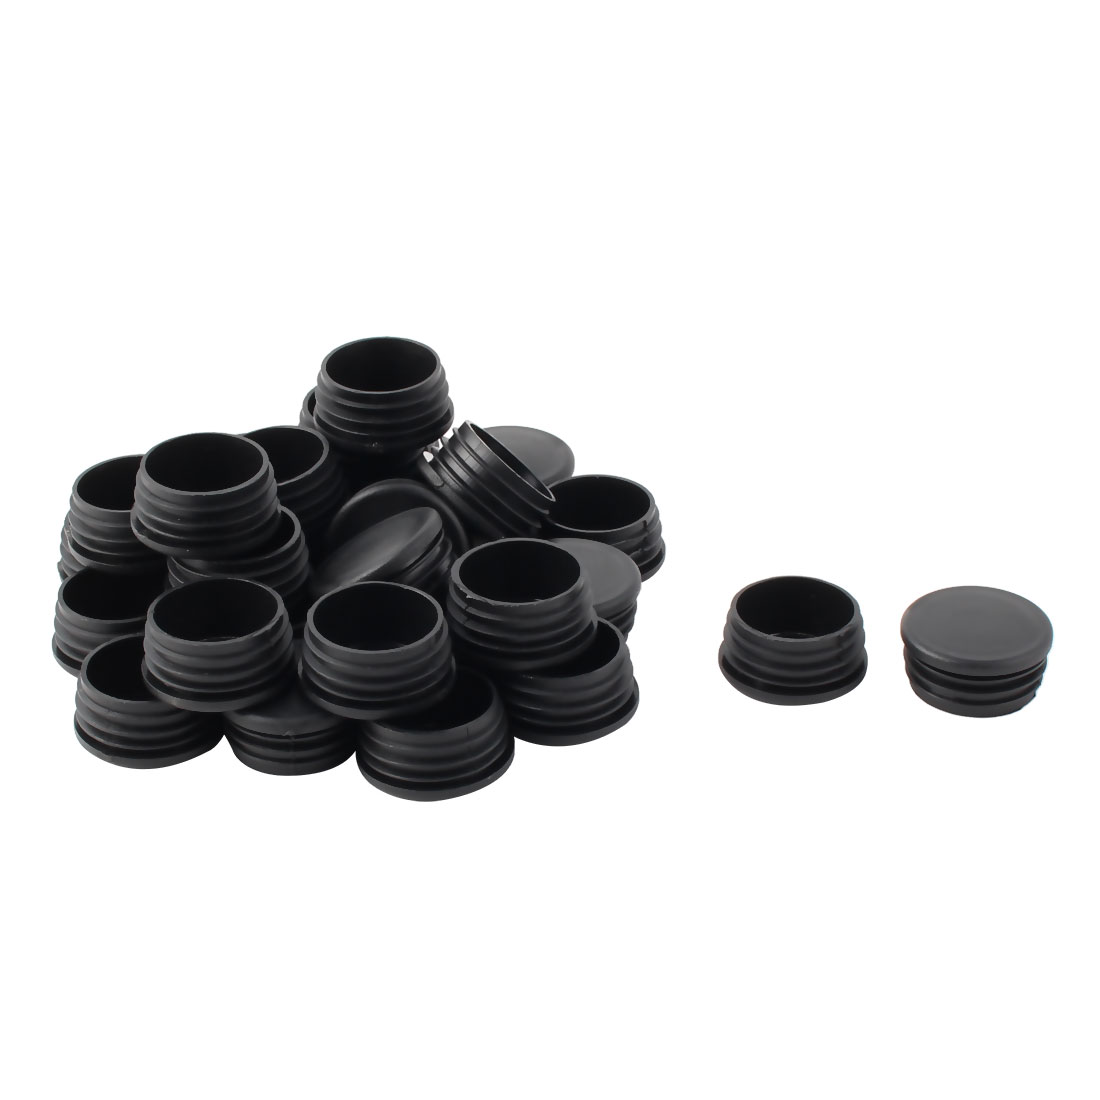 Plastic Round Tube Insert Blanking End Protectors Caps Black 40mm 28 PCS